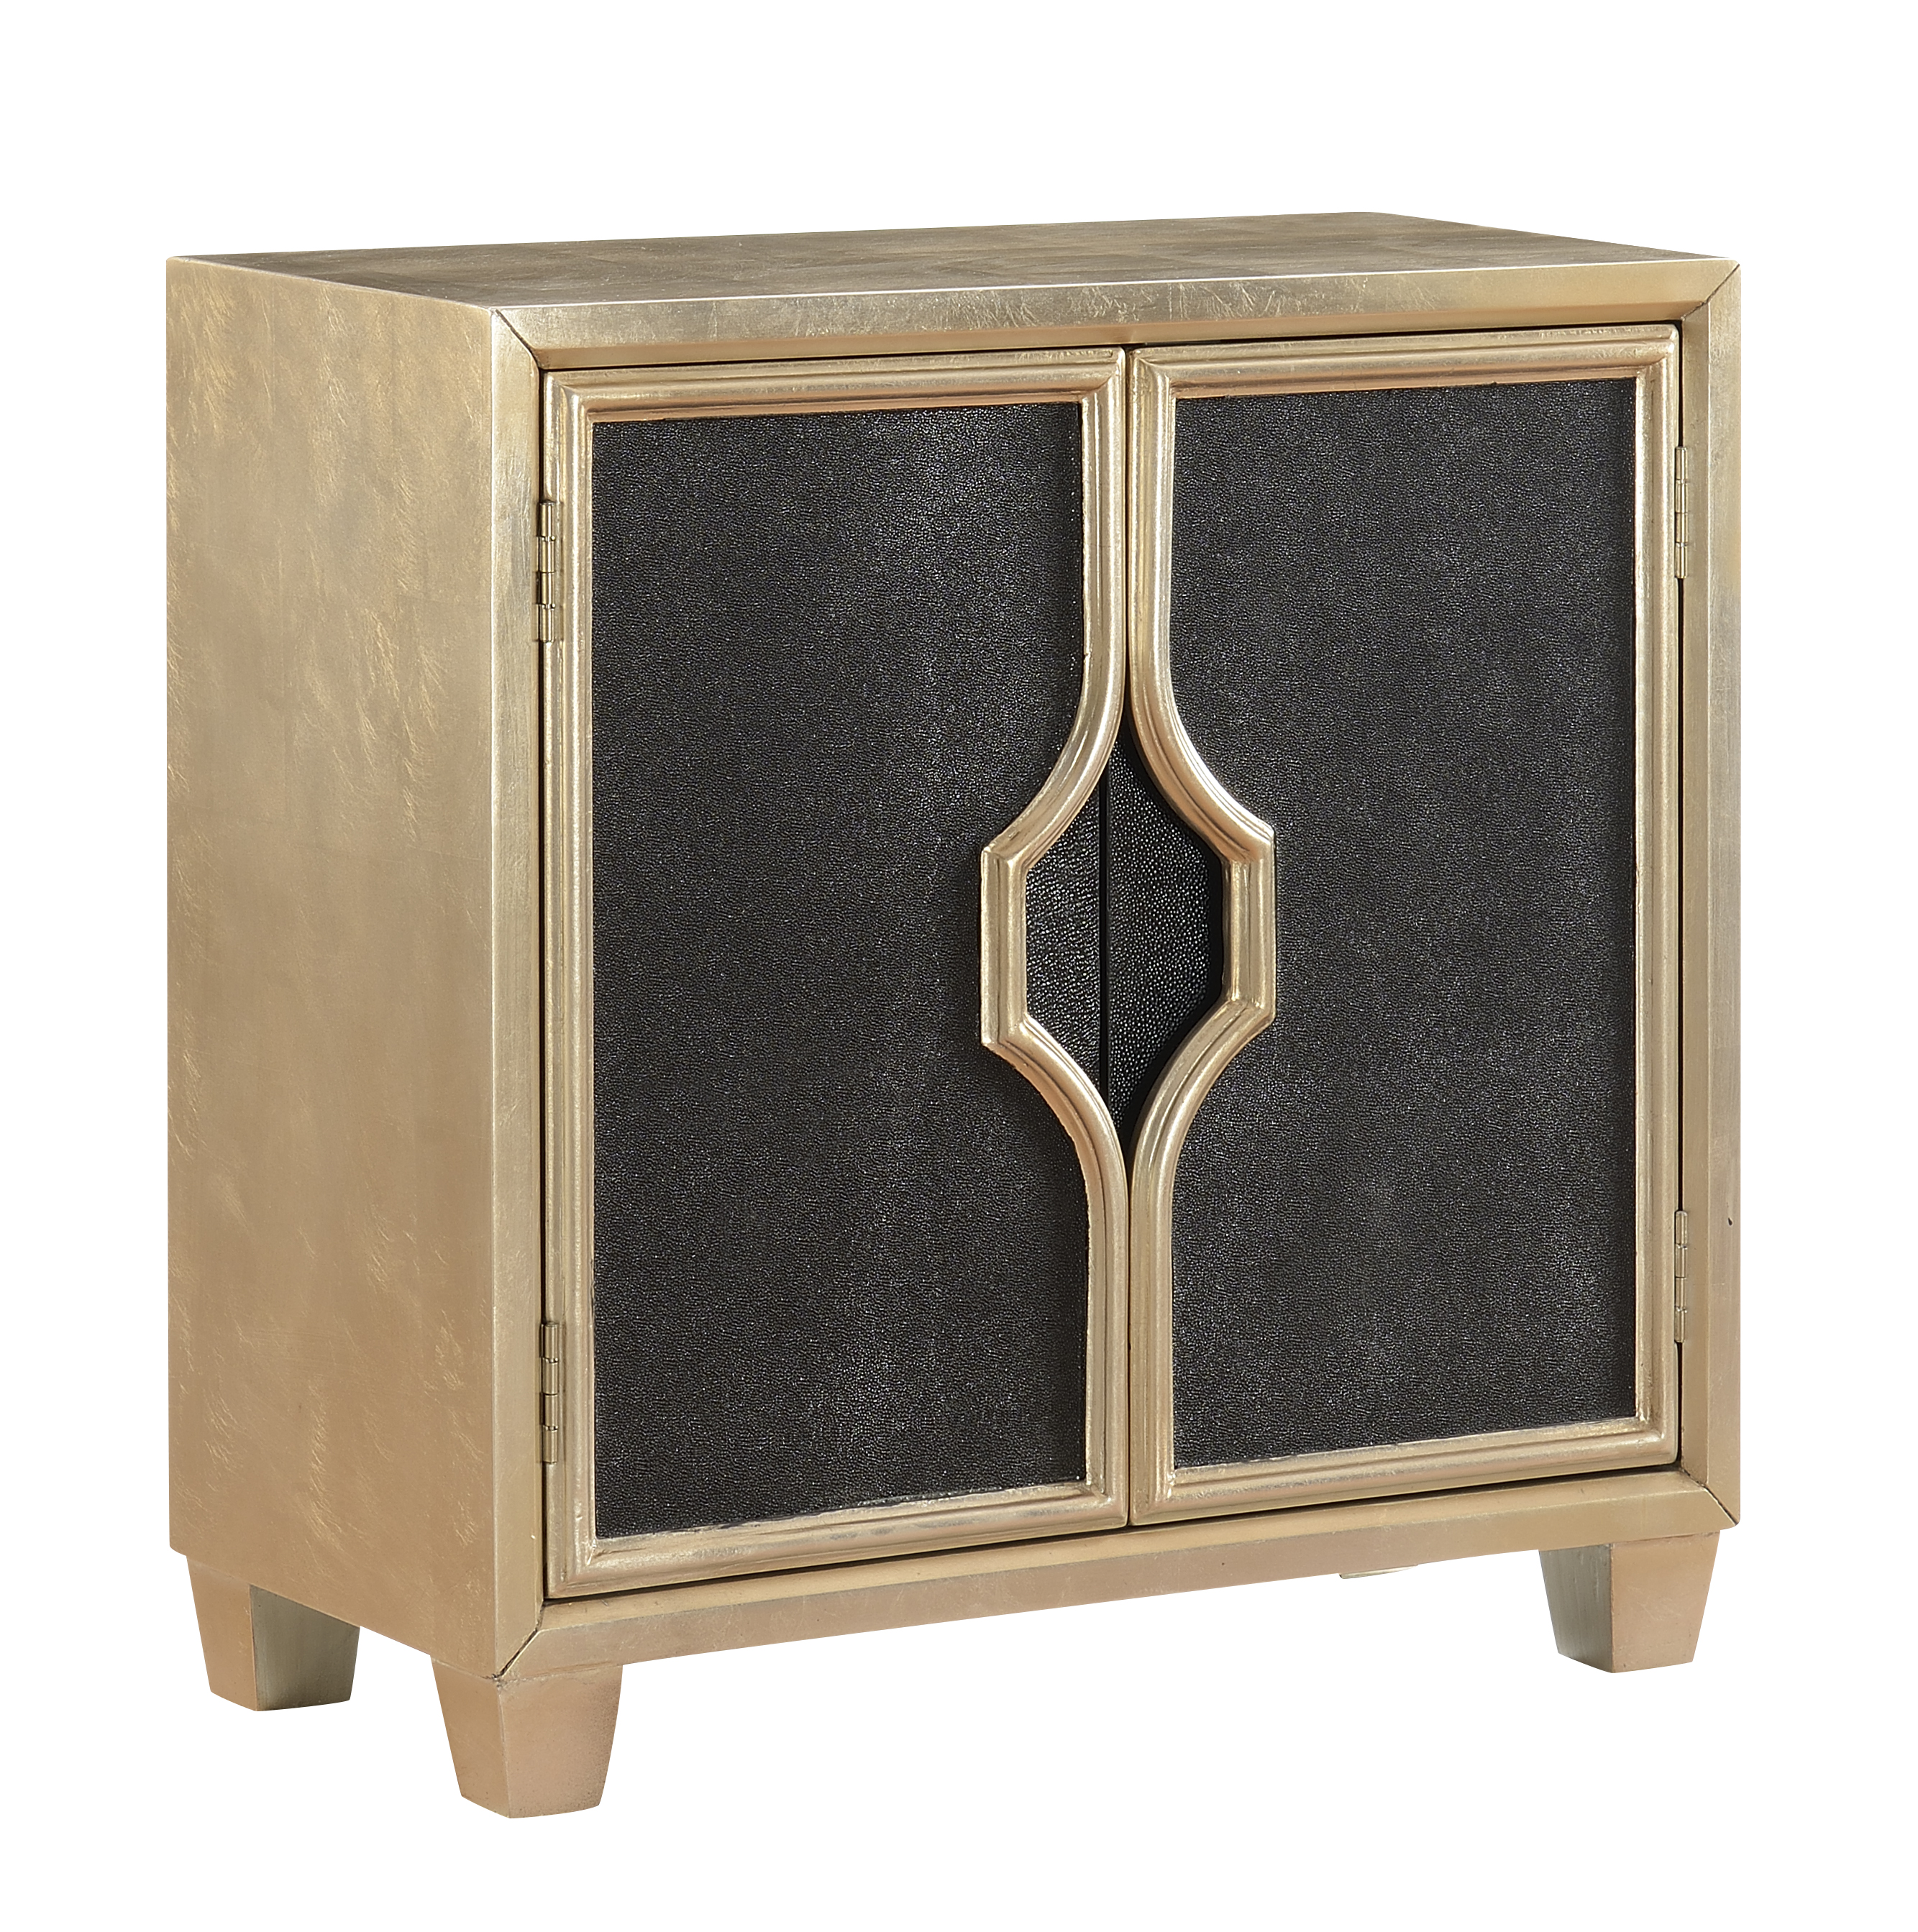 Coast to Coast Imports Coast to Coast Accents Two Door Cabinet - Item Number: 78704